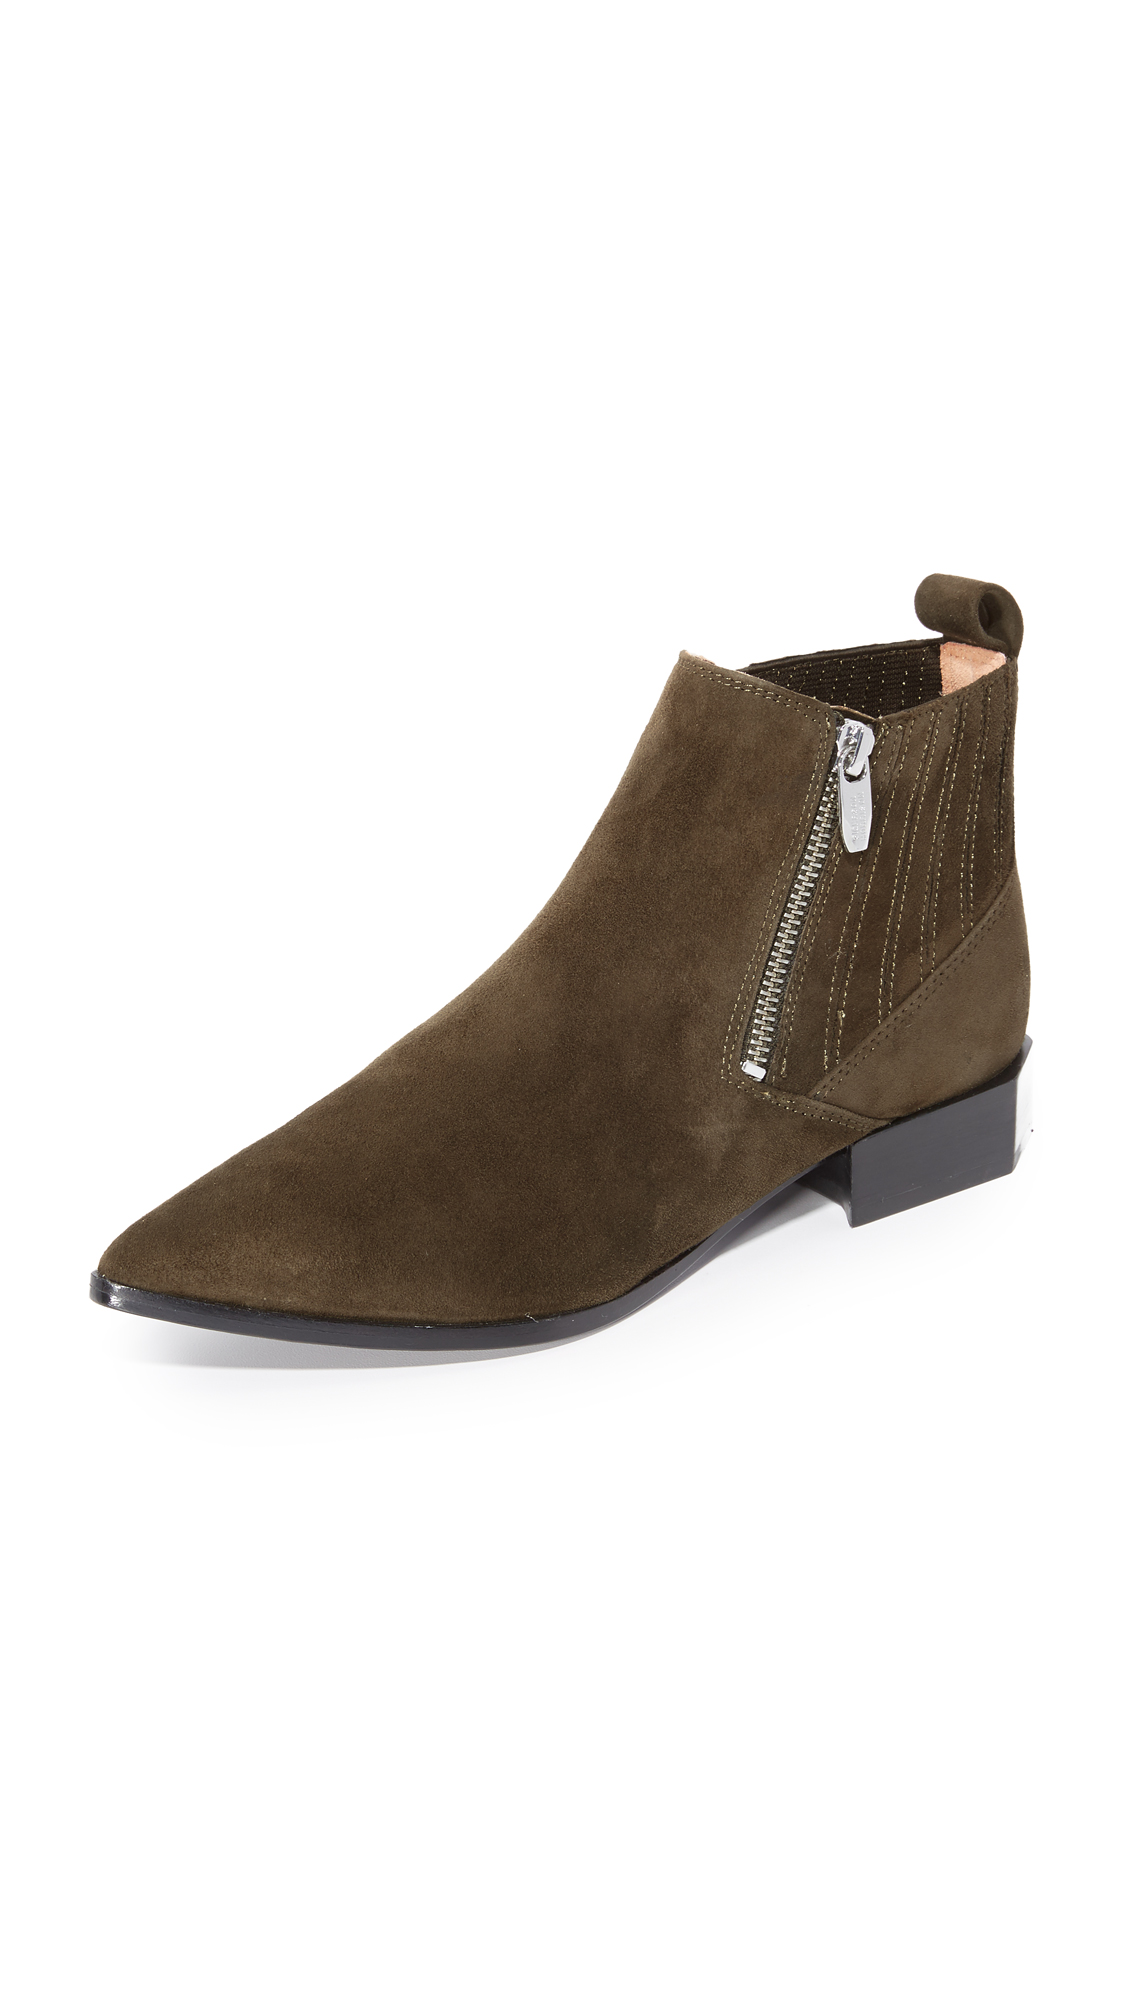 Sigerson Morrison Bambi Booties - Dark Olive